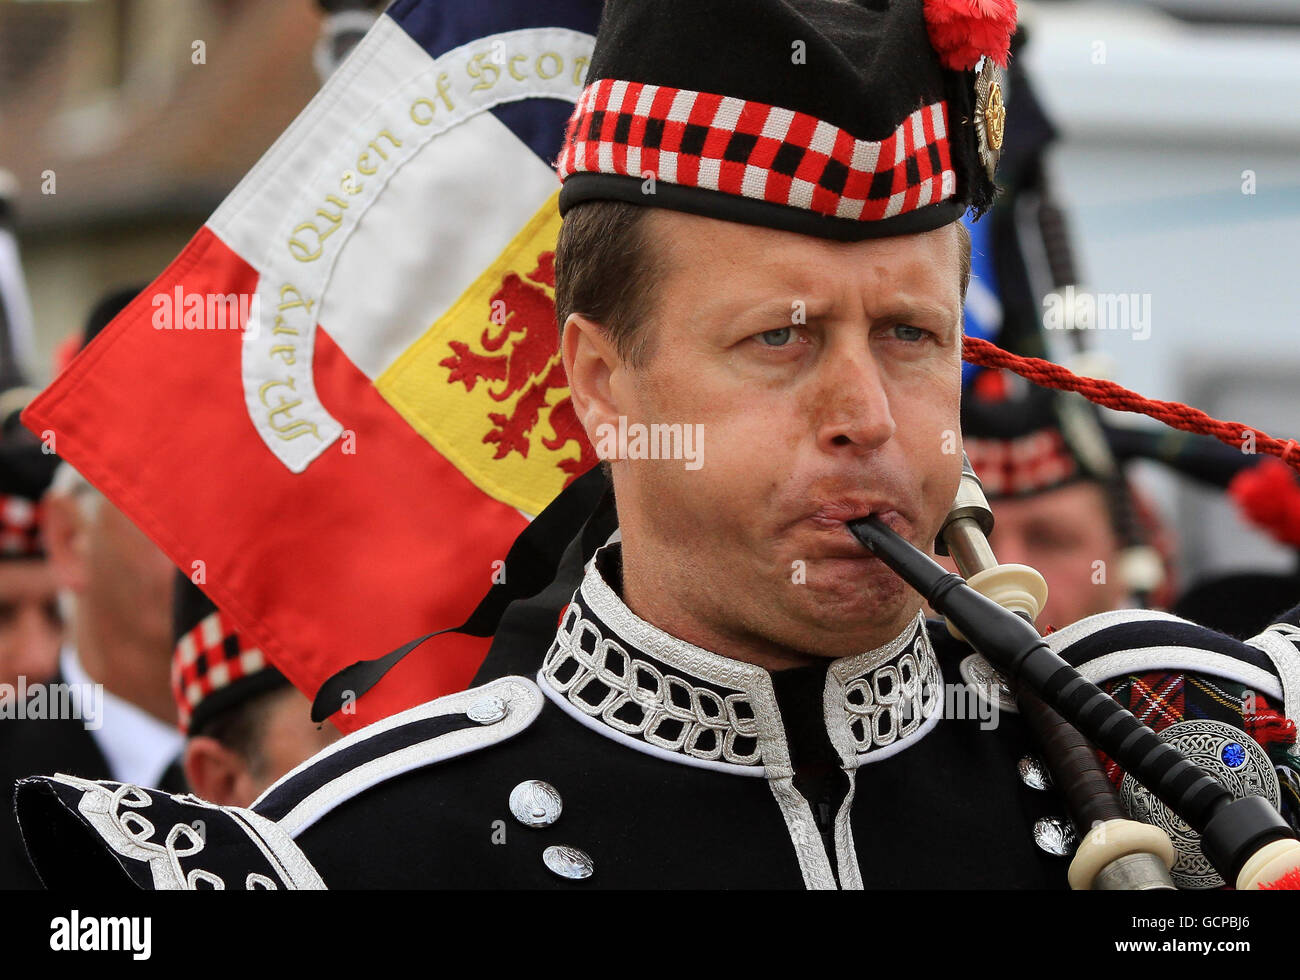 Remembering D Day Bill Millin Mad Piper Whose: Millin Stock Photos & Millin Stock Images